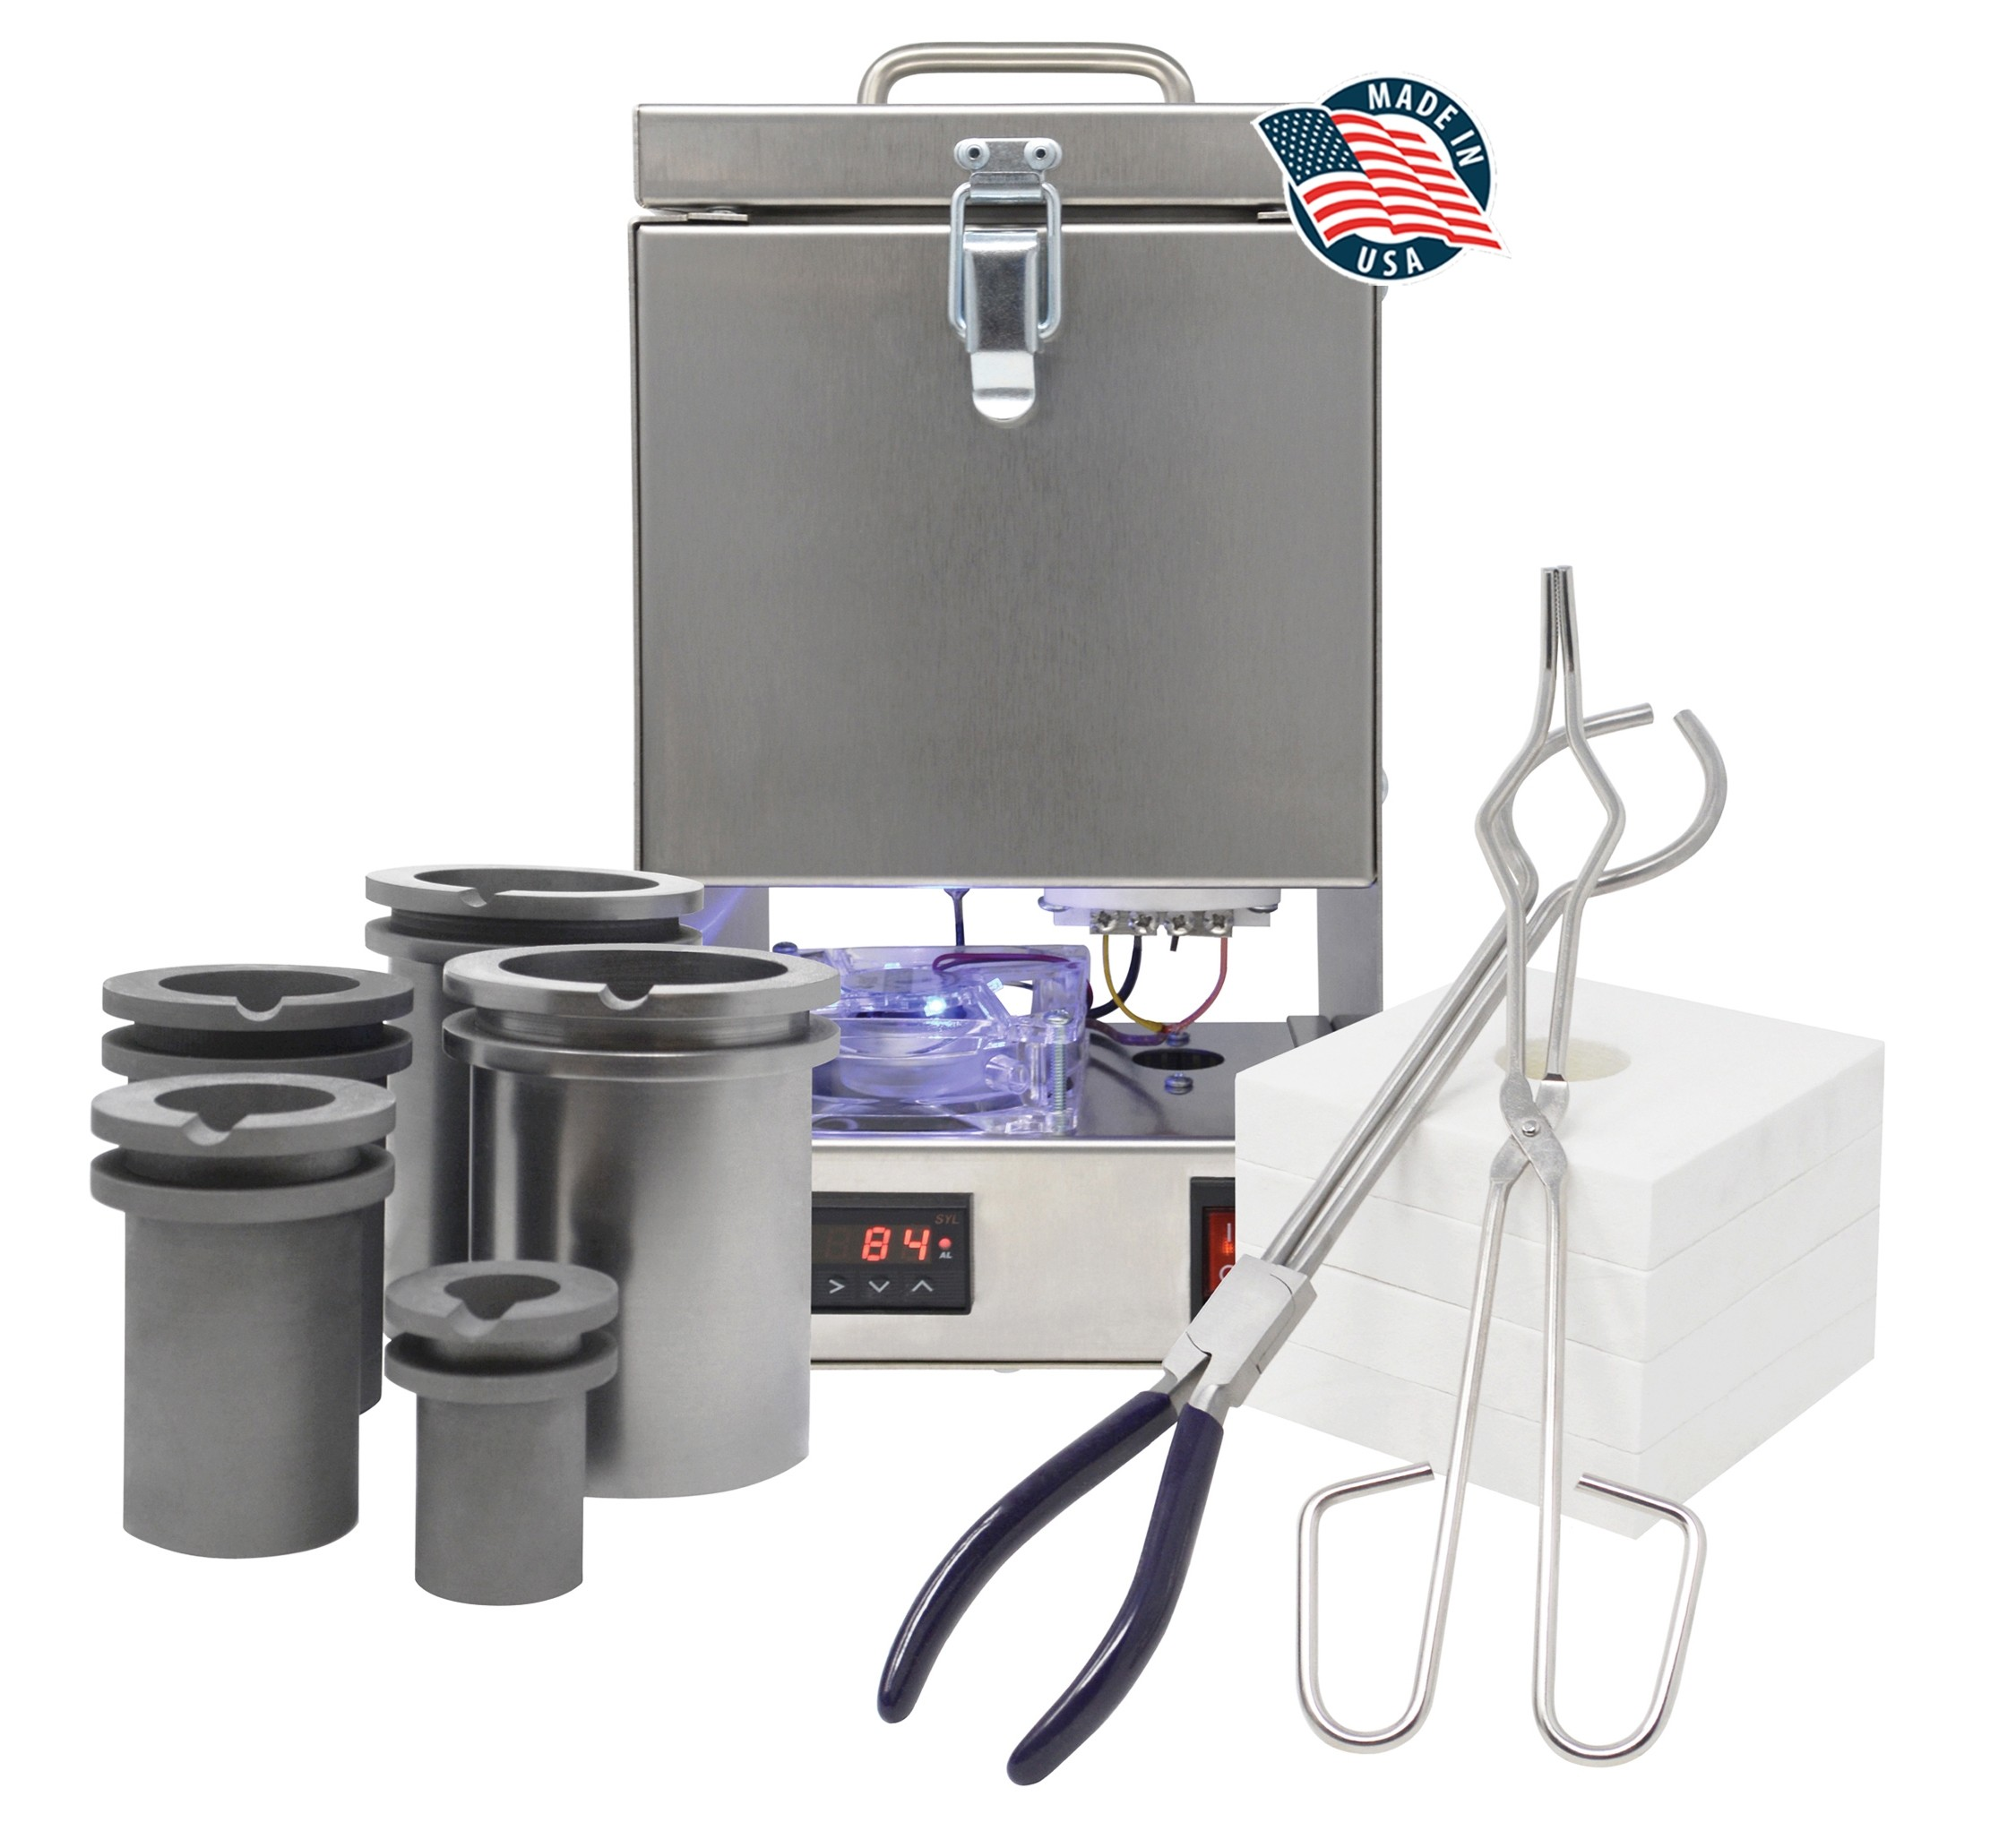 TableTop Furnace Deluxe QuikMelt Kit with Crucibles, Tongs, & Interchangeable Flanges - Made in the U.S.A.